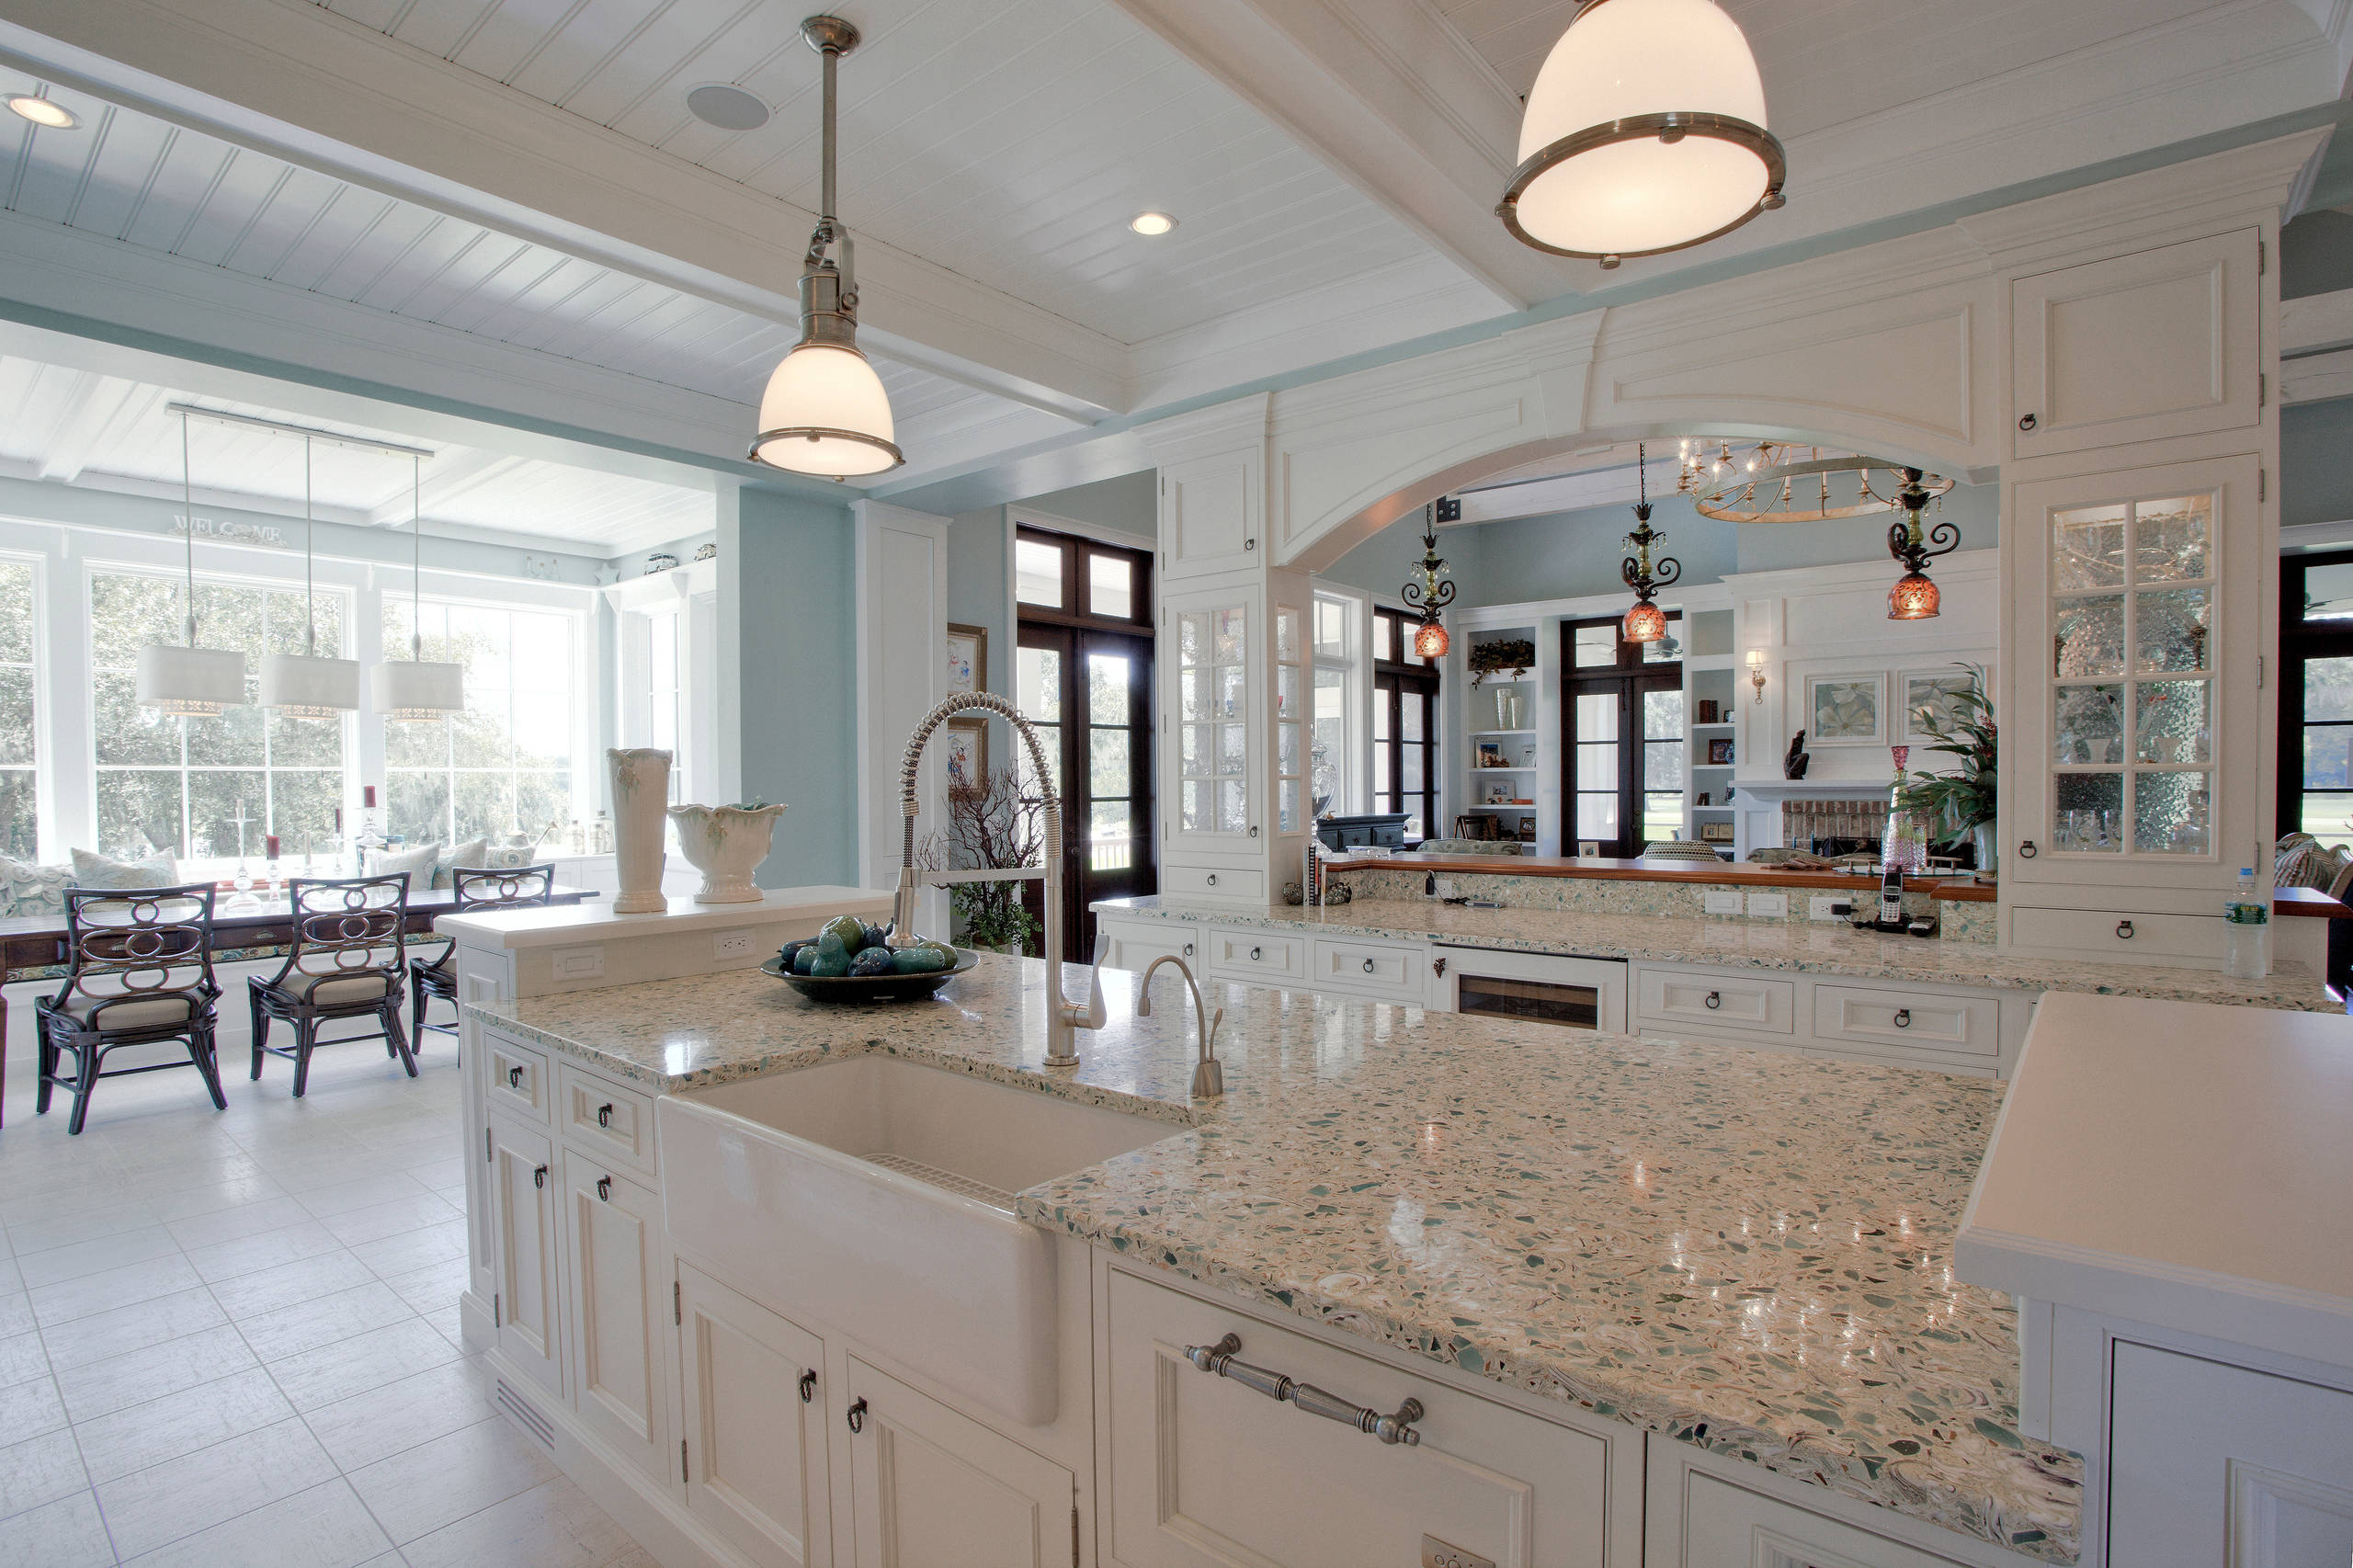 75 Beautiful Kitchen With Recycled Glass Countertops And Paneled Appliances Pictures Ideas September 2020 Houzz